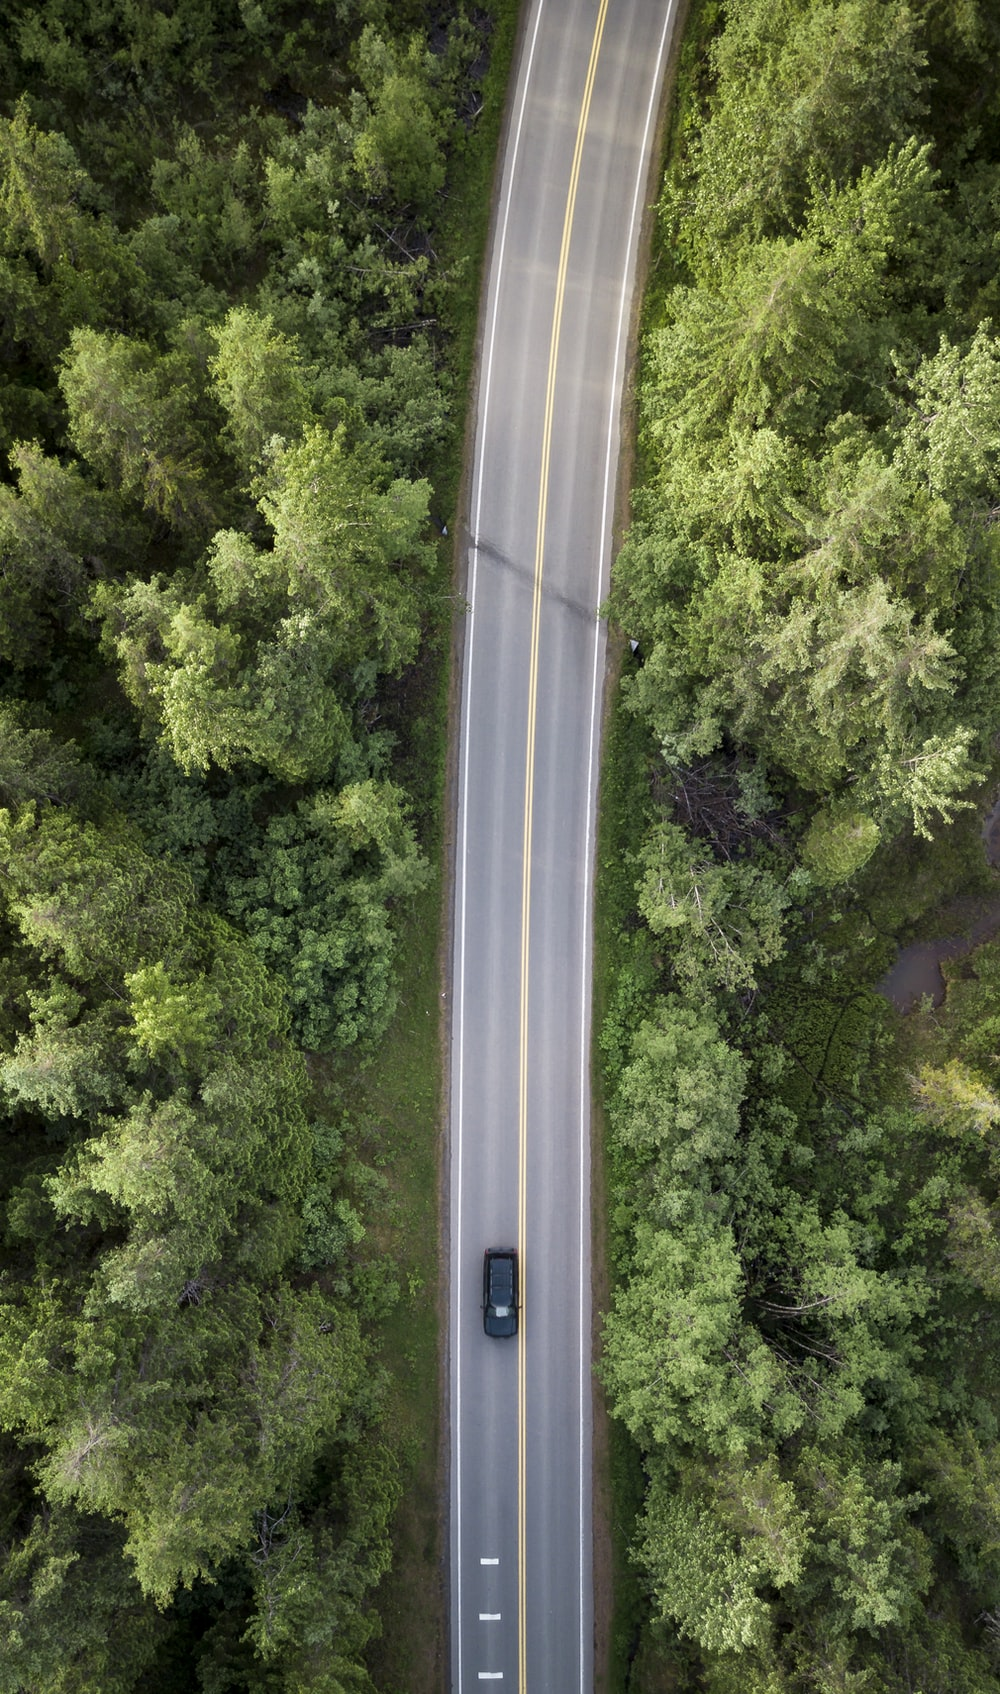 aerial view of black vehicle on gray asphalt road during daytime